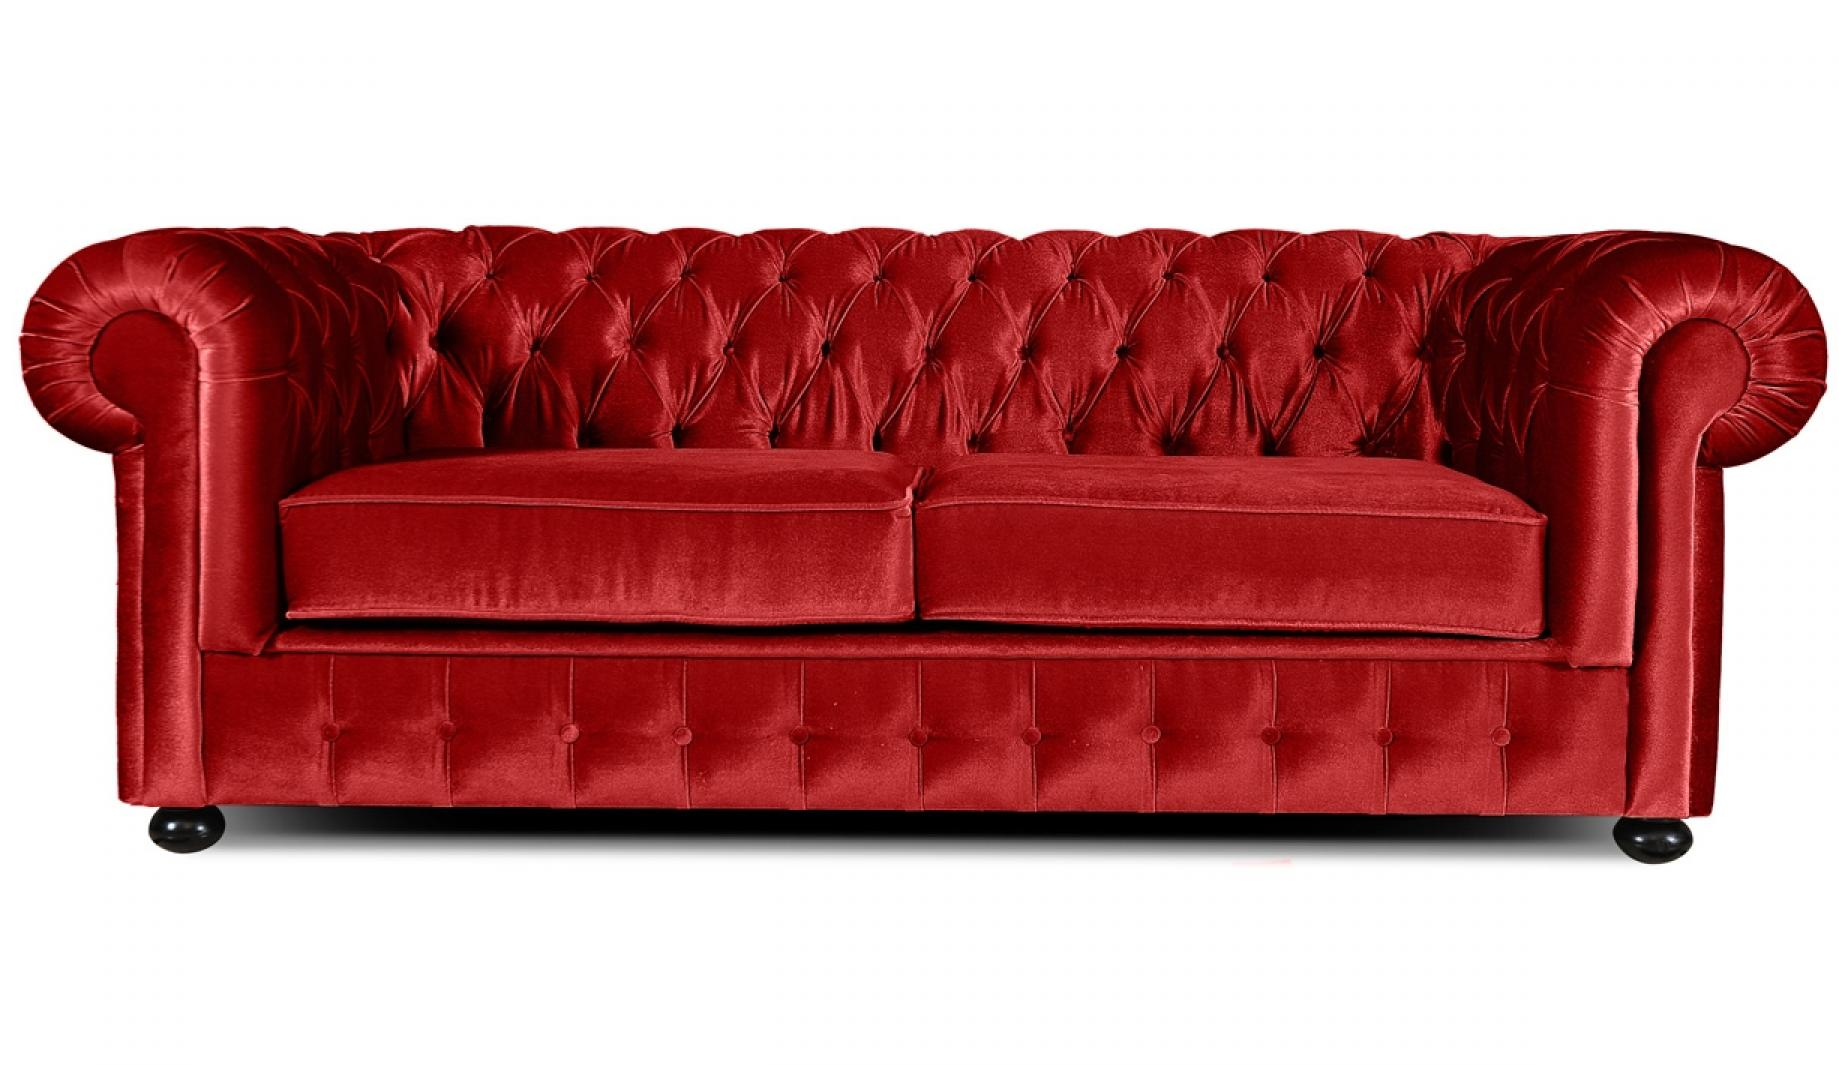 Canape chesterfield velours - Canape chesterfield velour ...